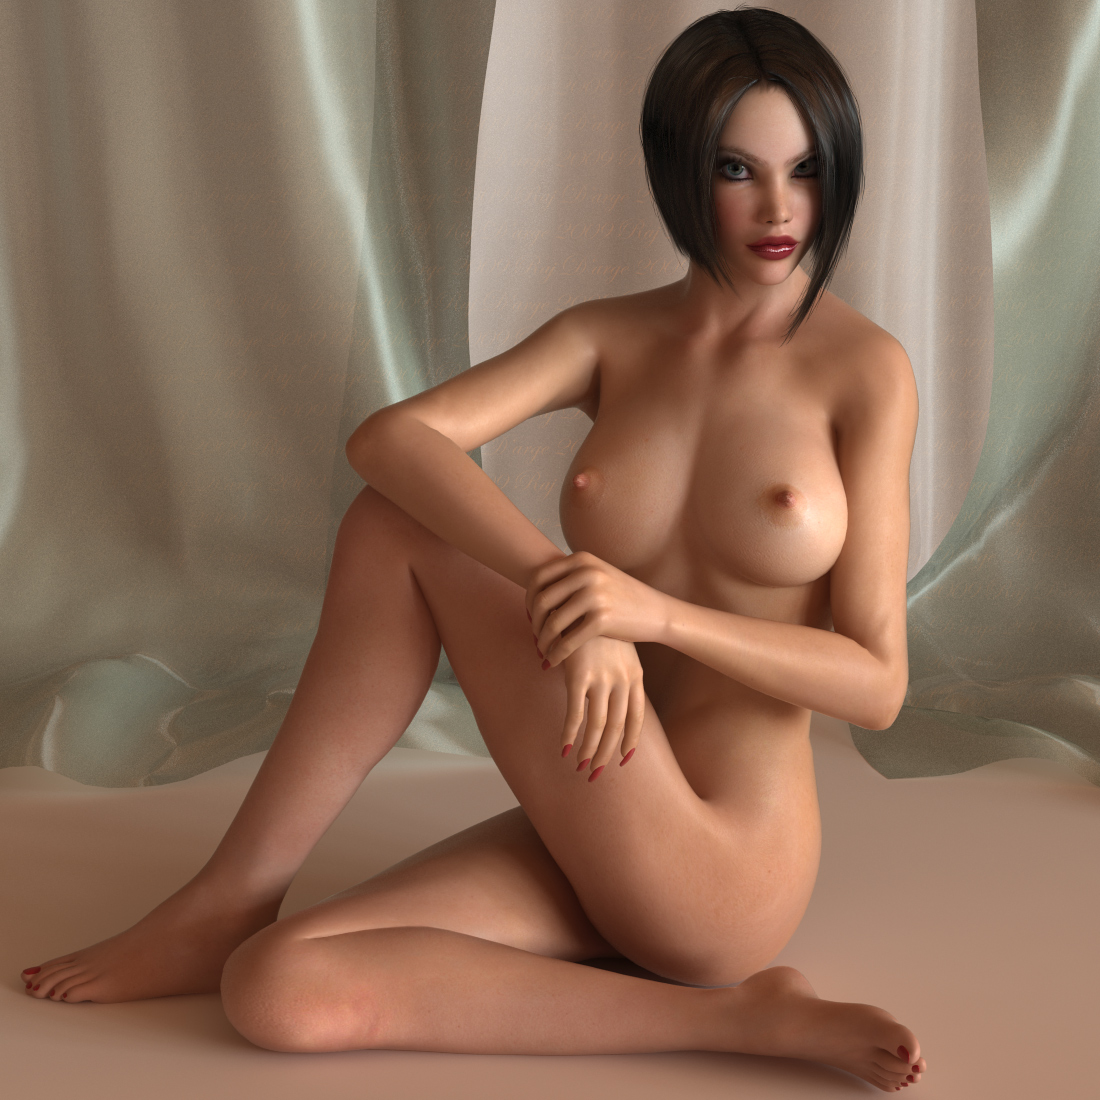 Perfect Nude Girls - Official Site